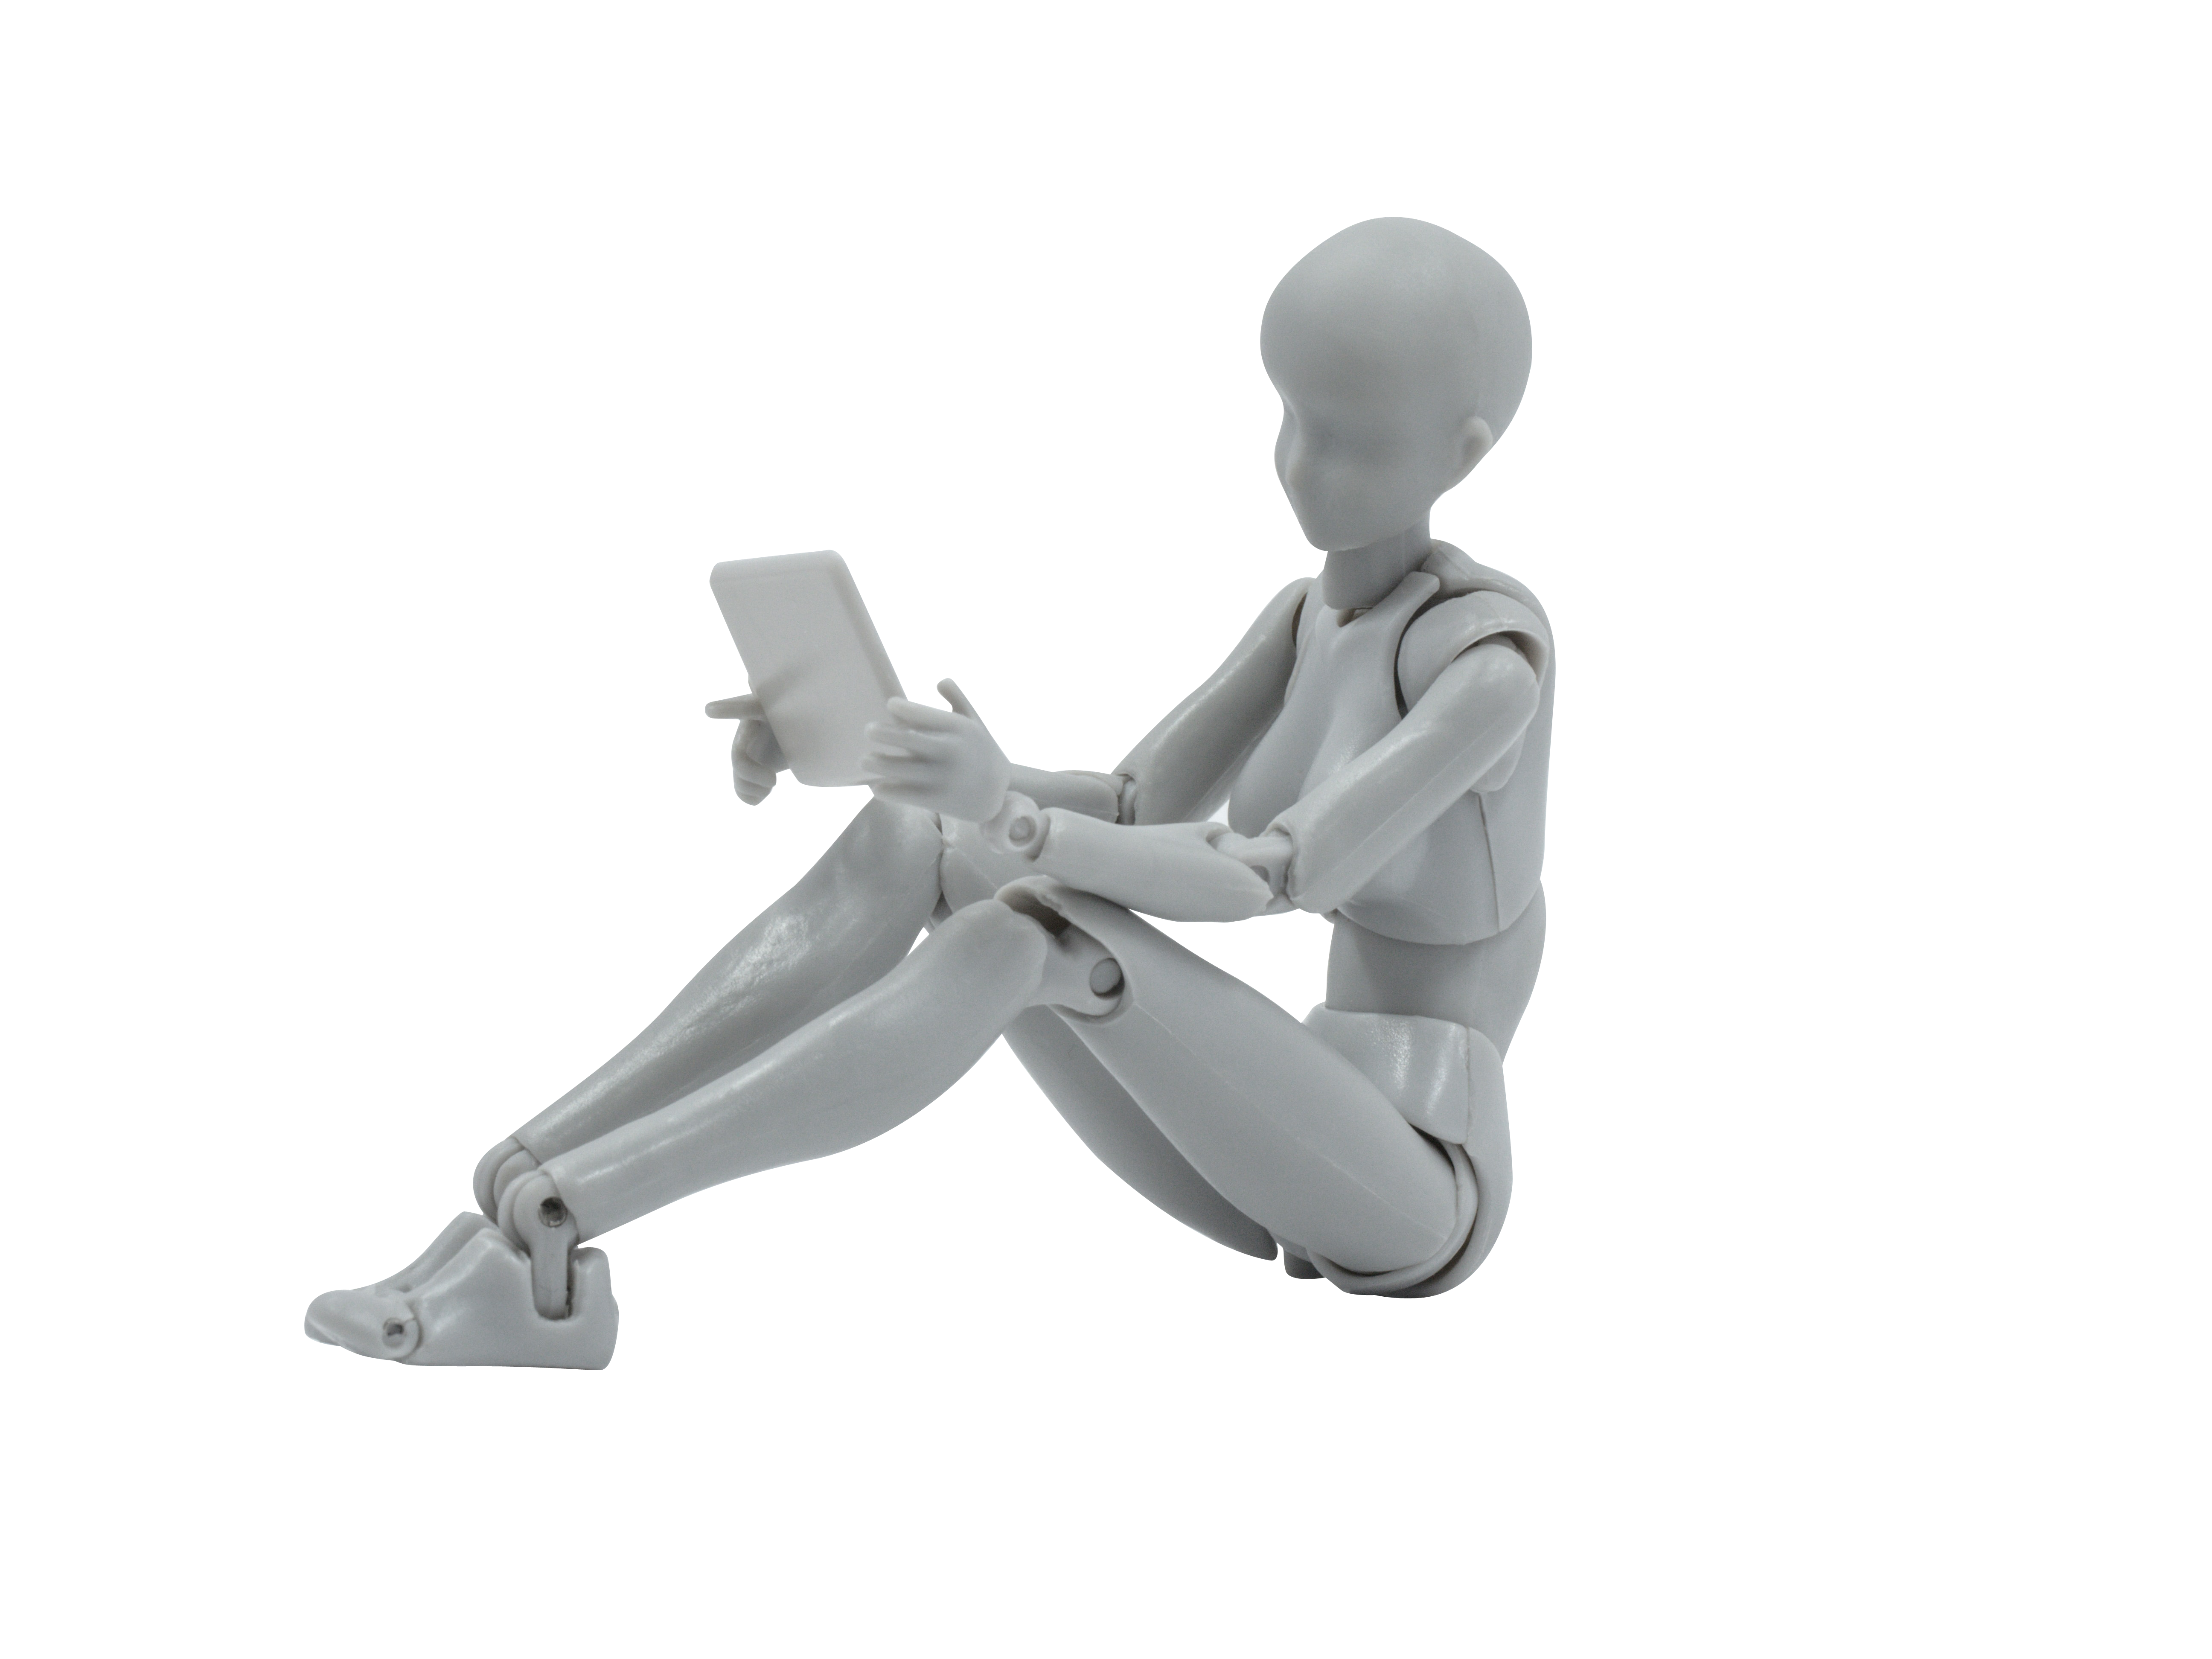 Female Mannequin Looking at Tablet Transparent Background PNG